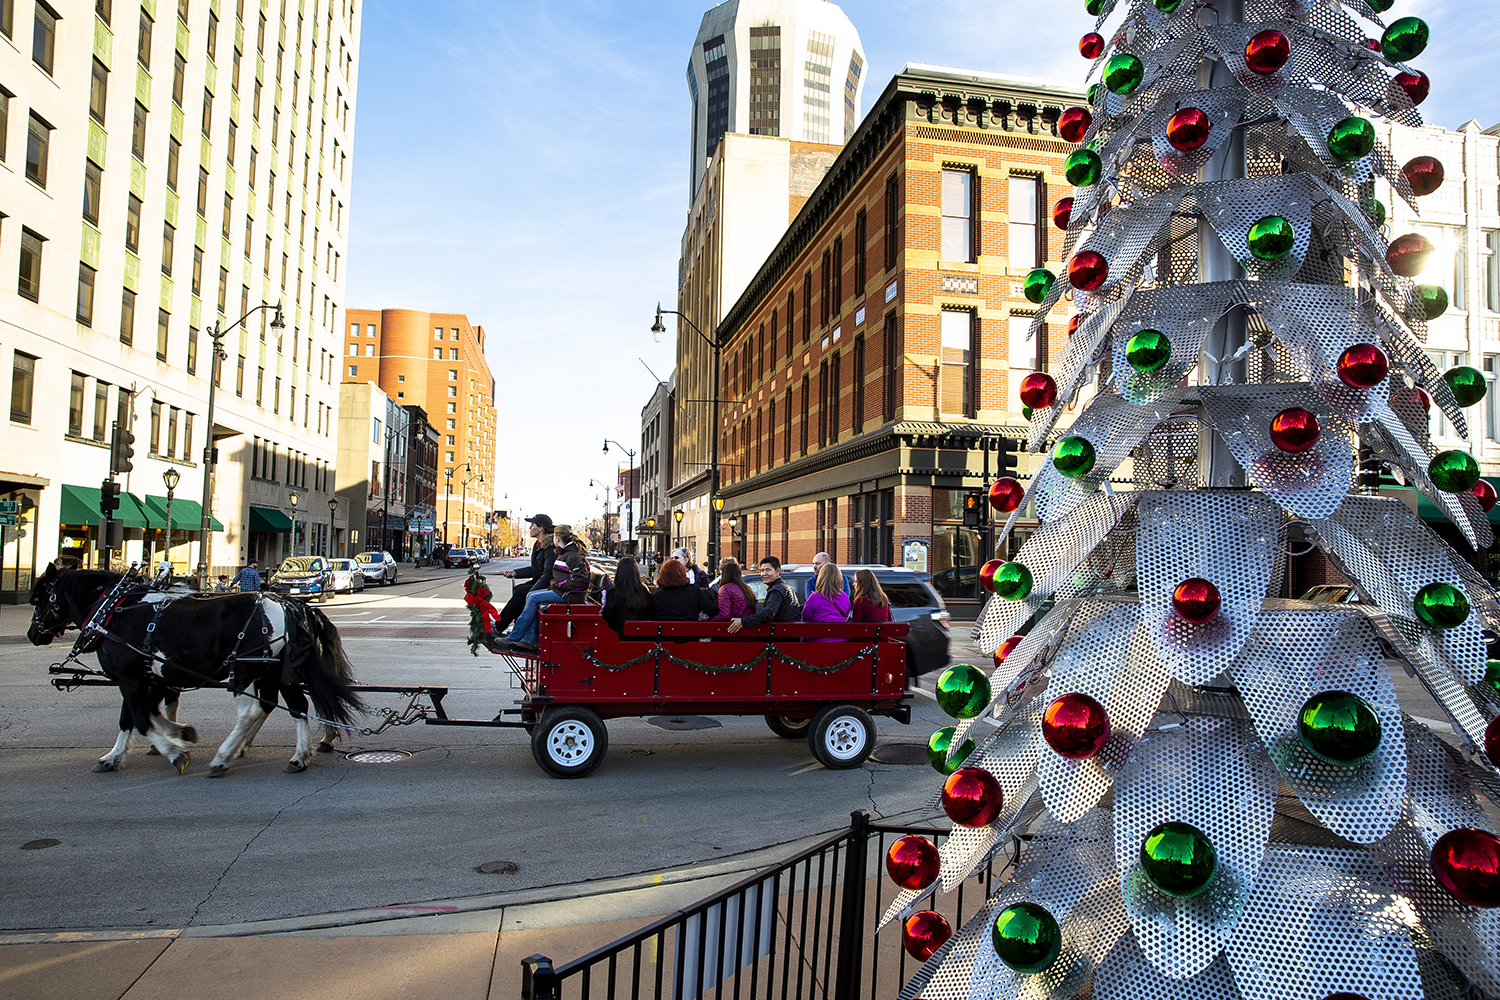 A horse drawn carriage passes the community Christmas tree on its way around the downtown square on the first of this year's Old Capitol Holiday Walks sponsored by DSI Springfield Saturday, Nov. 24, 2018 in Springfield, Ill. It was also Small Business Saturday, with nearly a dozen new shops open since last year. The Holiday Walks will continue every Saturday from noon to 5 p.m. and every Wednesday from 5-8 p.m. through Dec. 22. The carriage rides were provided by Red Gate Farm and the Christmas tree was built and donated by Ace Sign Co. [Rich Saal/The State Journal-Register]